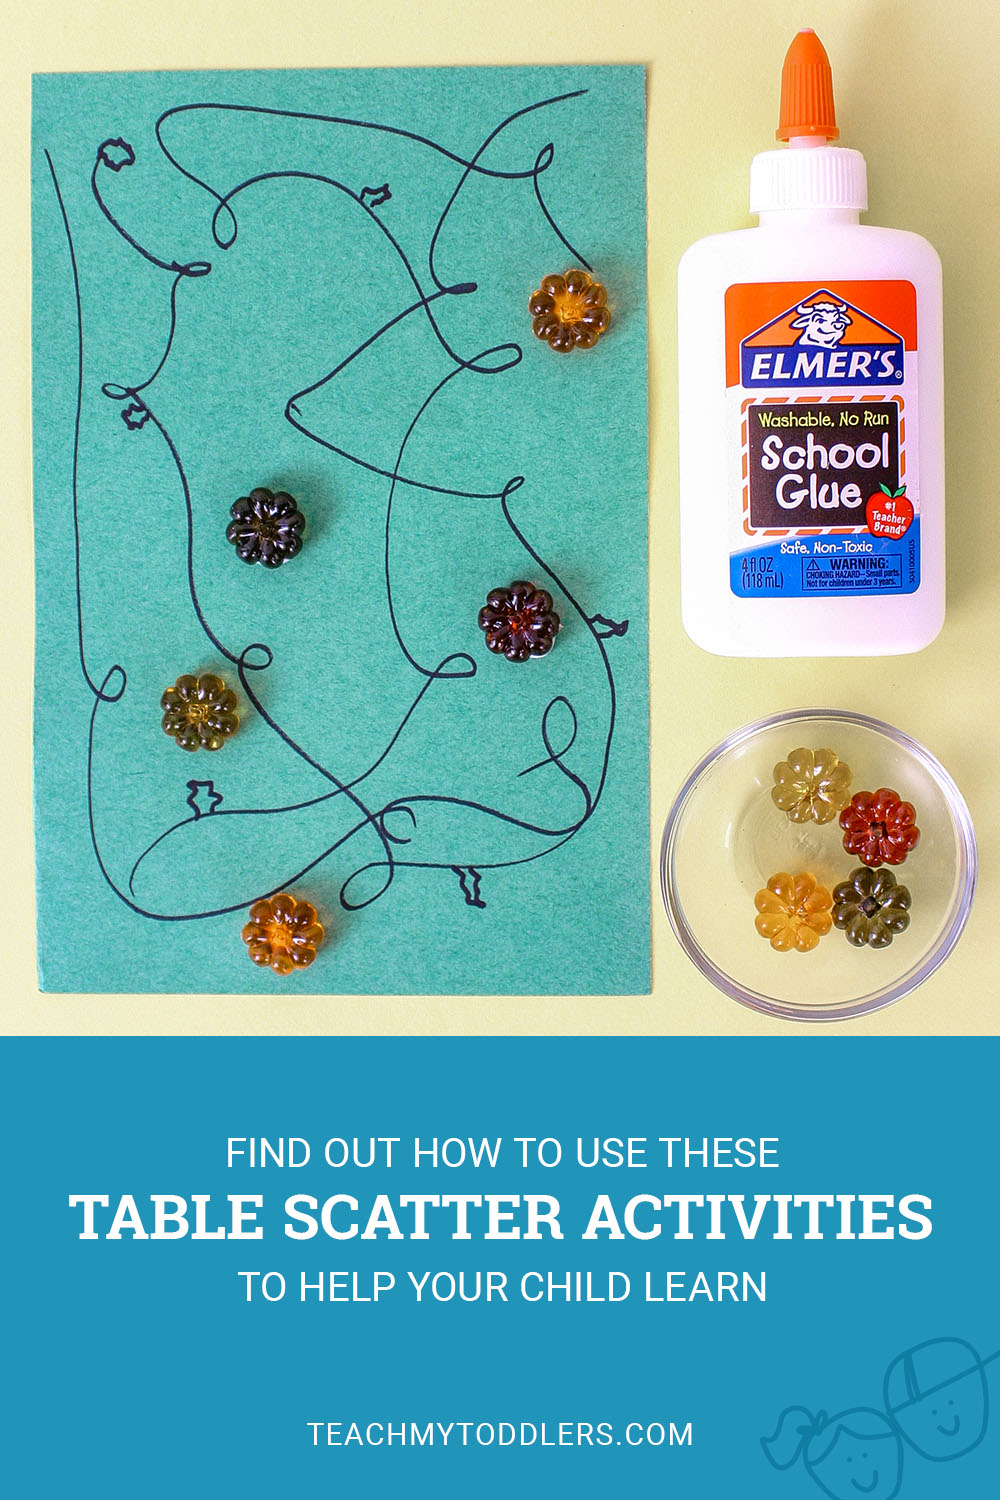 Learn how to use these table scatter activities to teach toddlers math